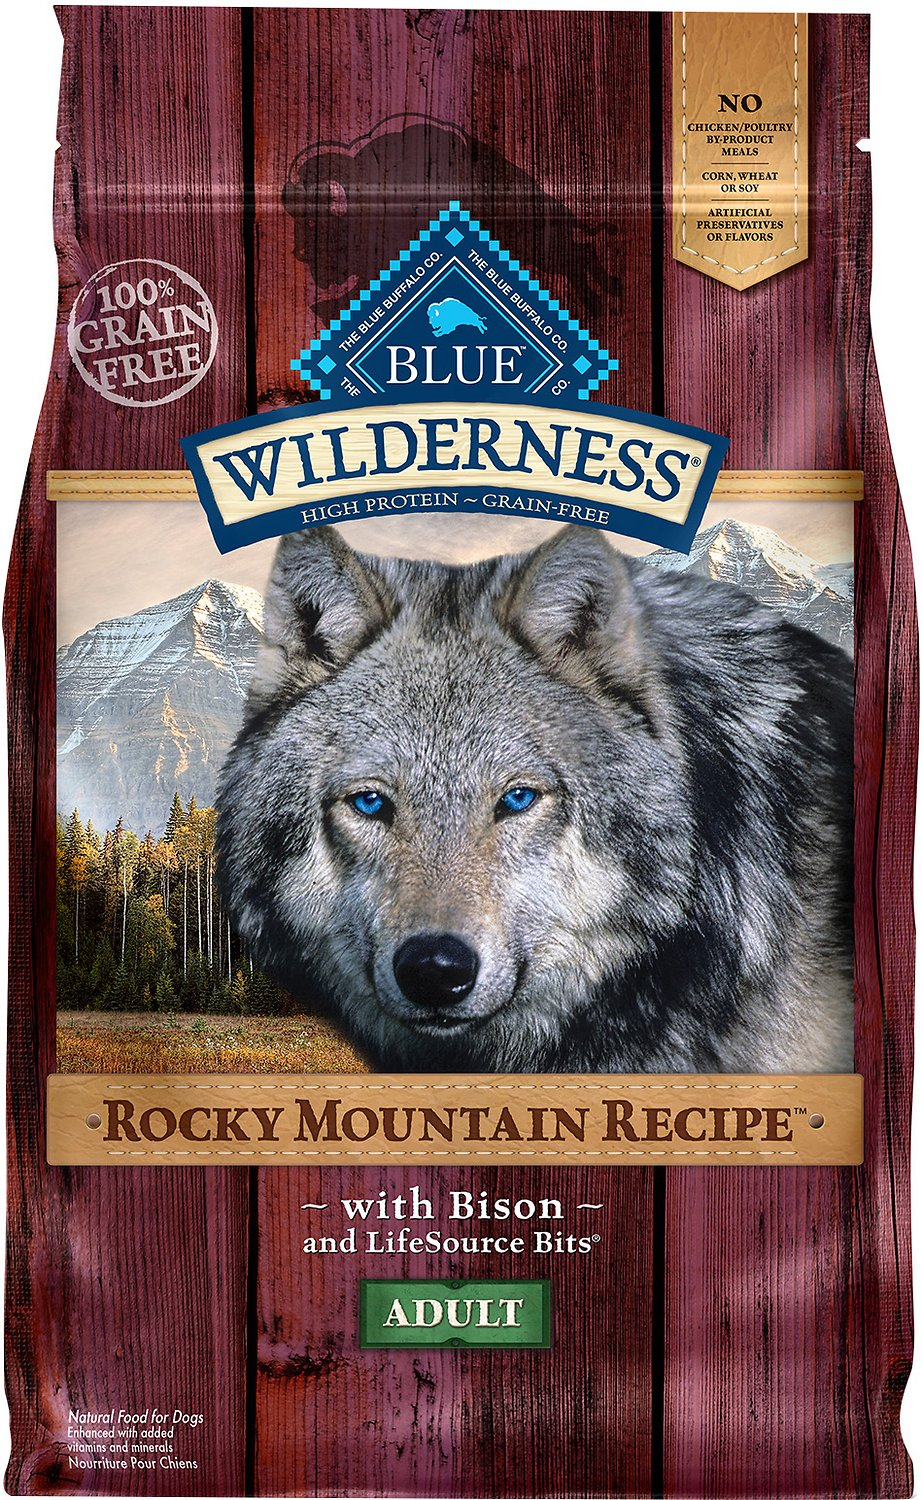 Blue Buffalo Wilderness Rocky Mountain Recipe with Bison Adult Grain-Free Dry Dog Food Image